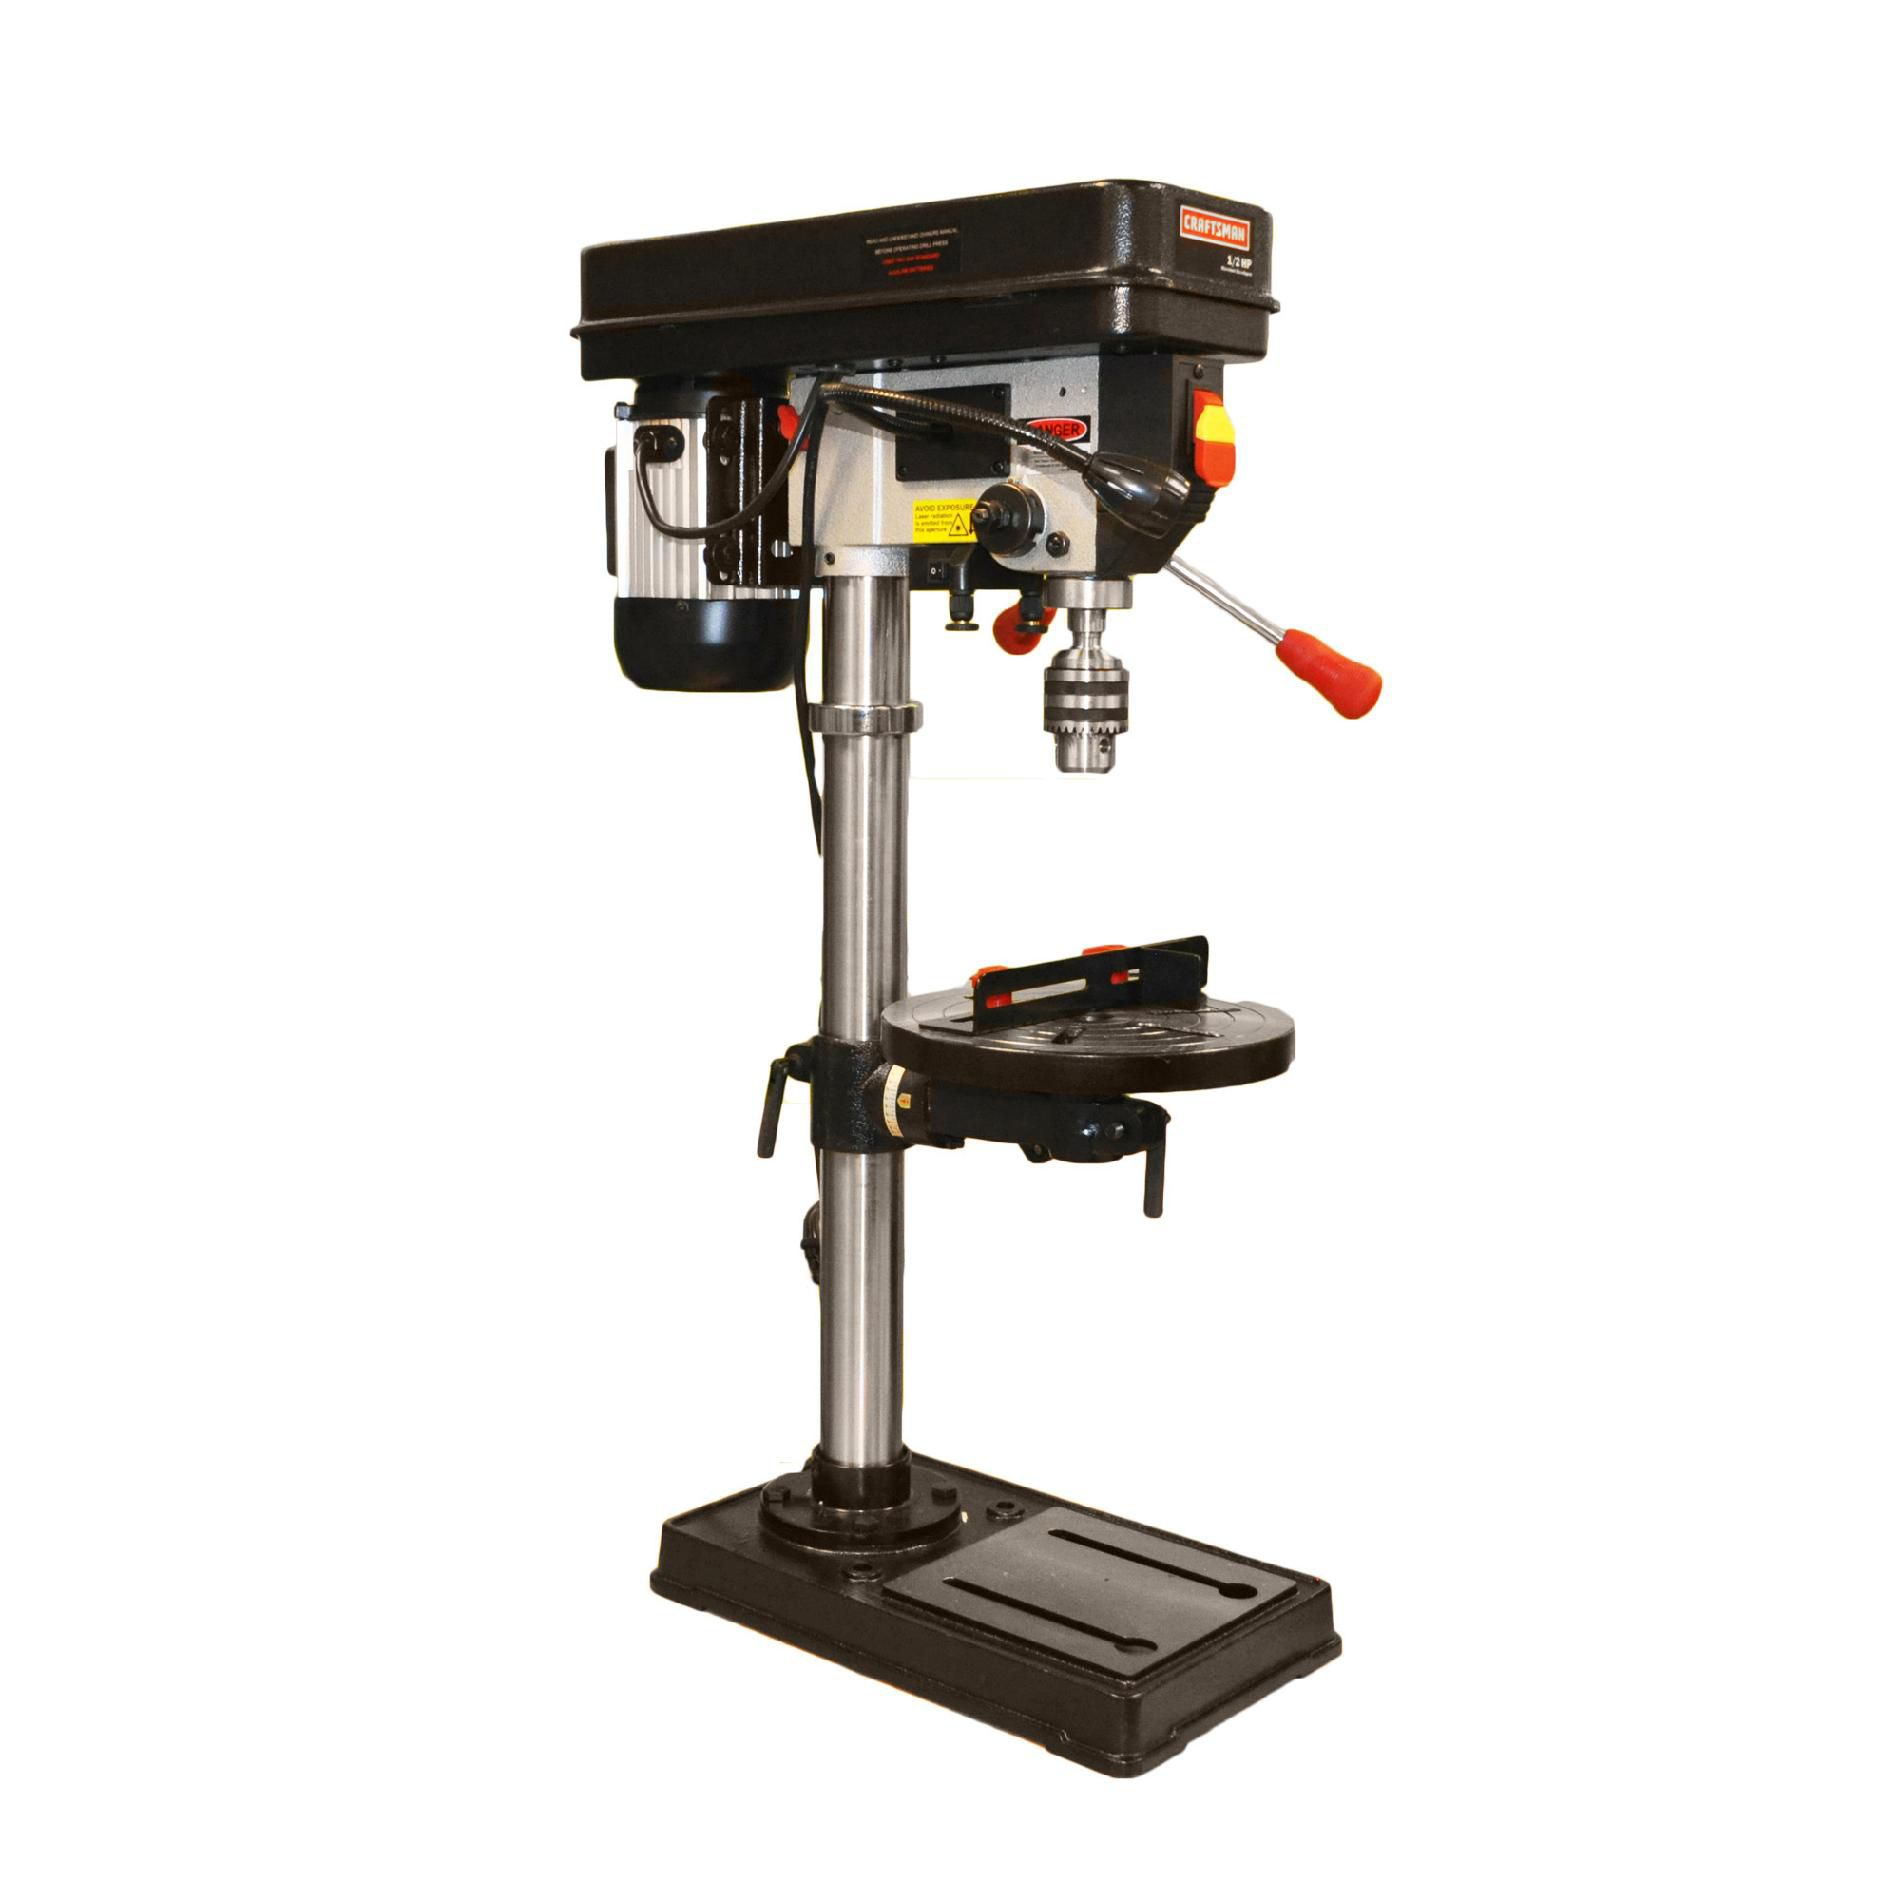 "Craftsman 12"" Drill Press With Laser And LED Light"